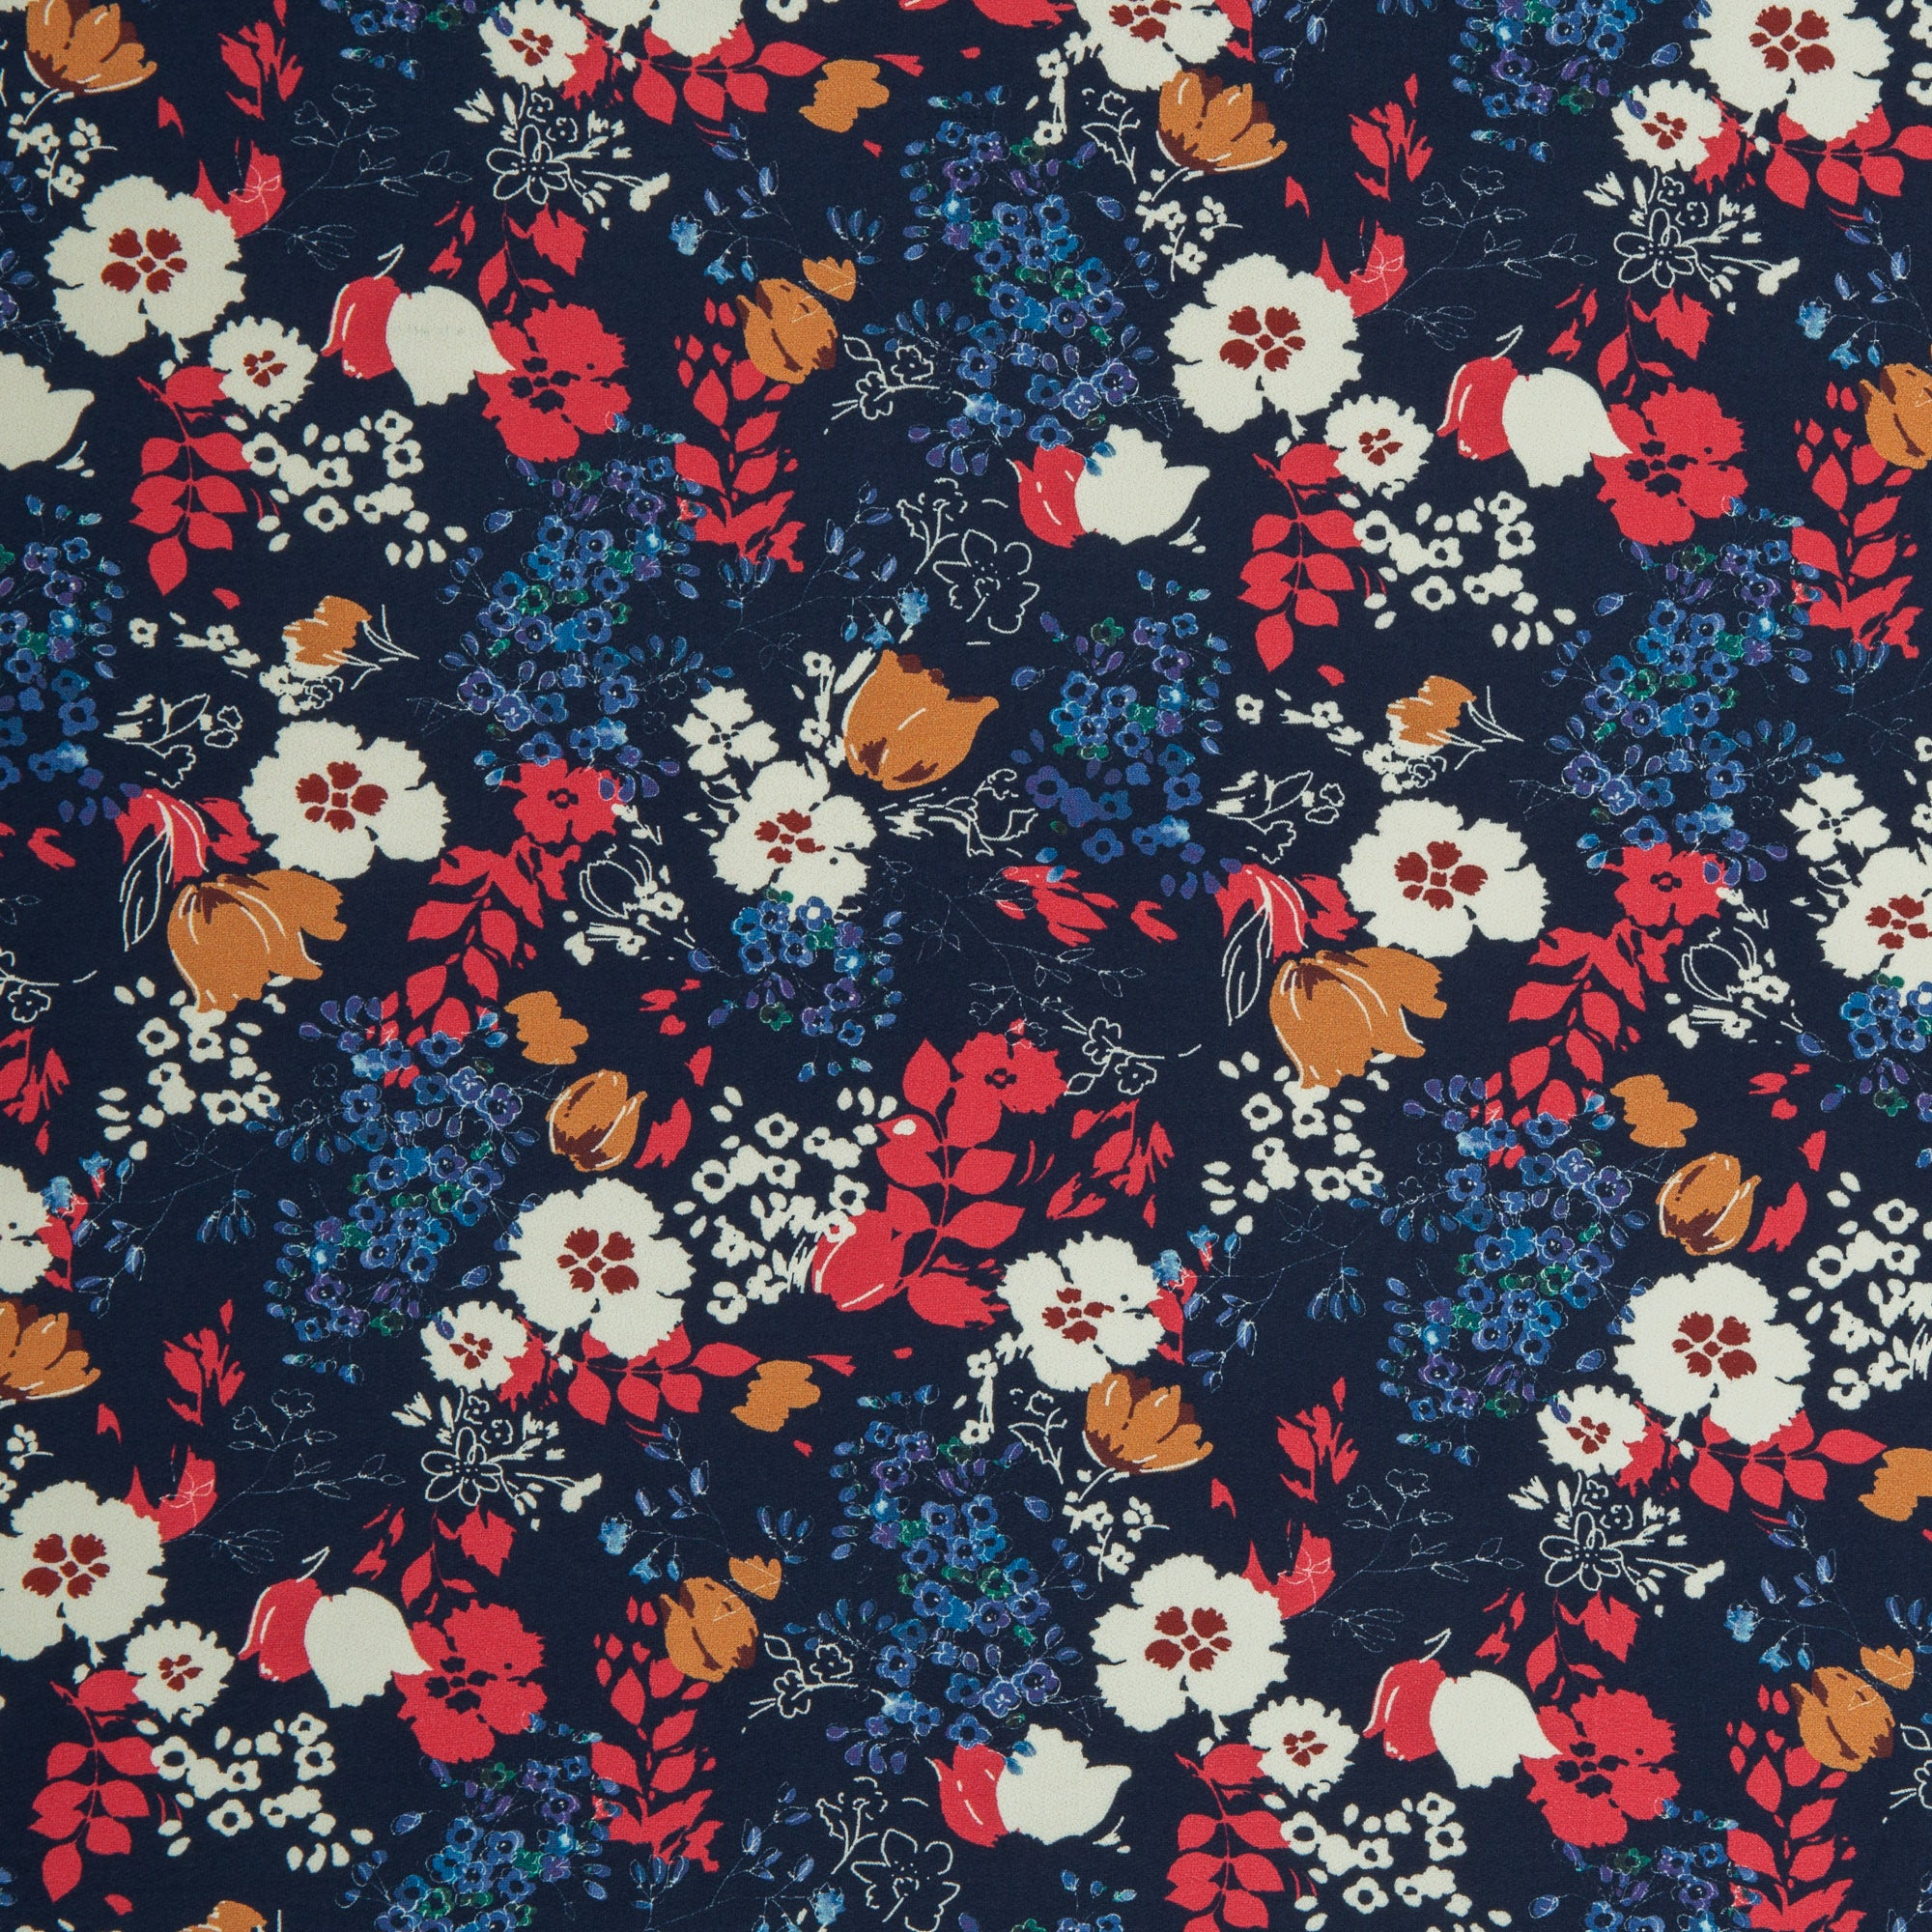 Sommersweat | All Over Print | Blumen